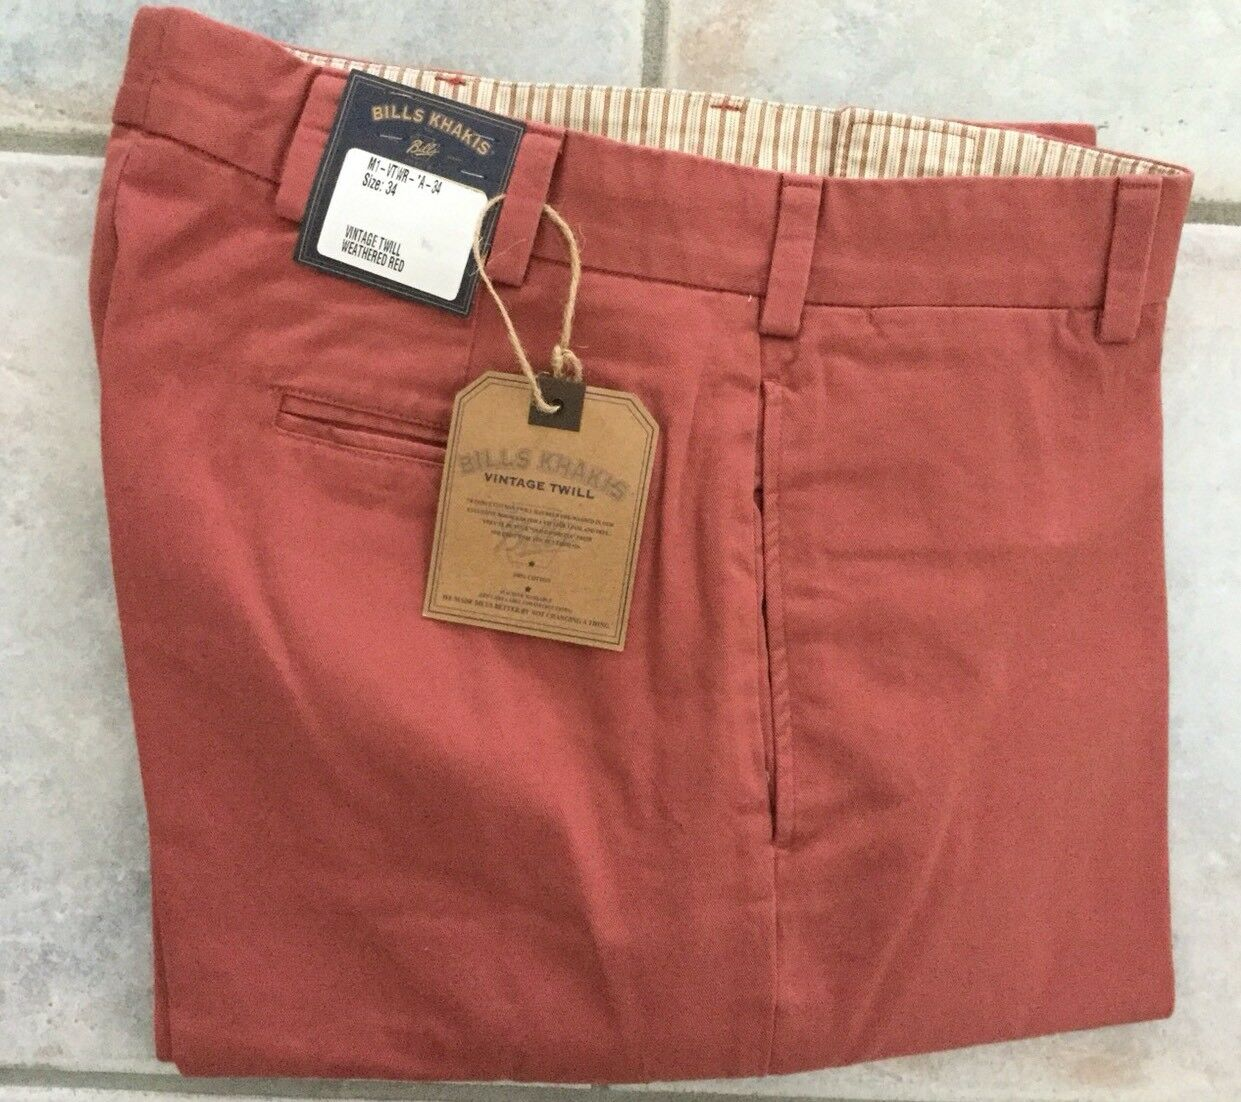 NWT-Bills khakis M1-VTWR Size 34 PLAIN VTG TWILL Relaxed WEATHERED RED